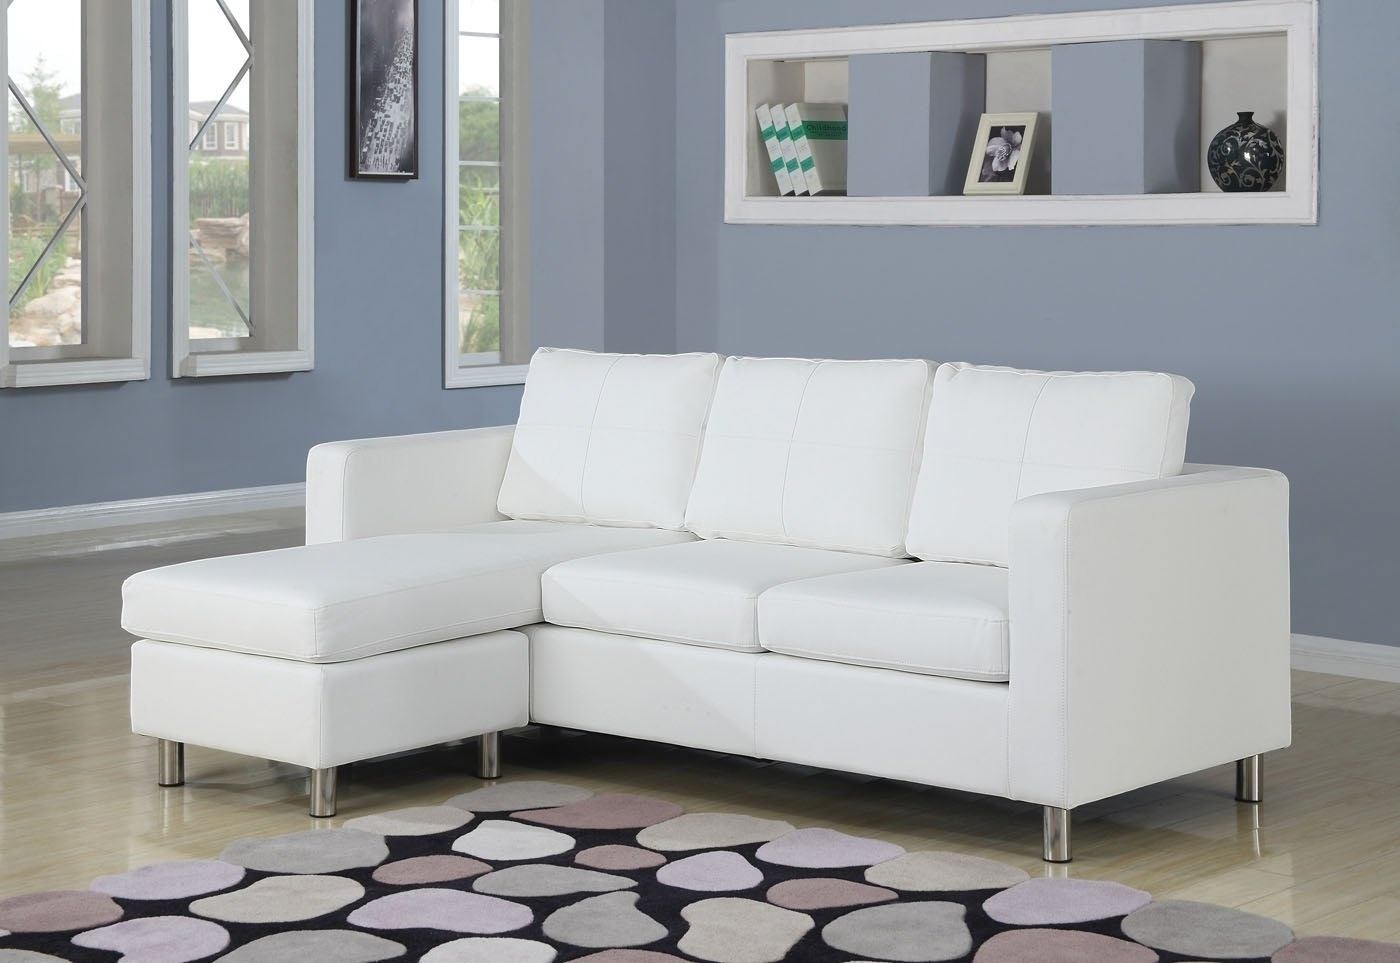 Most Current L White Leather Sectional Sofa With Chaise And Back Also Arms On With Small Chaises (View 7 of 15)